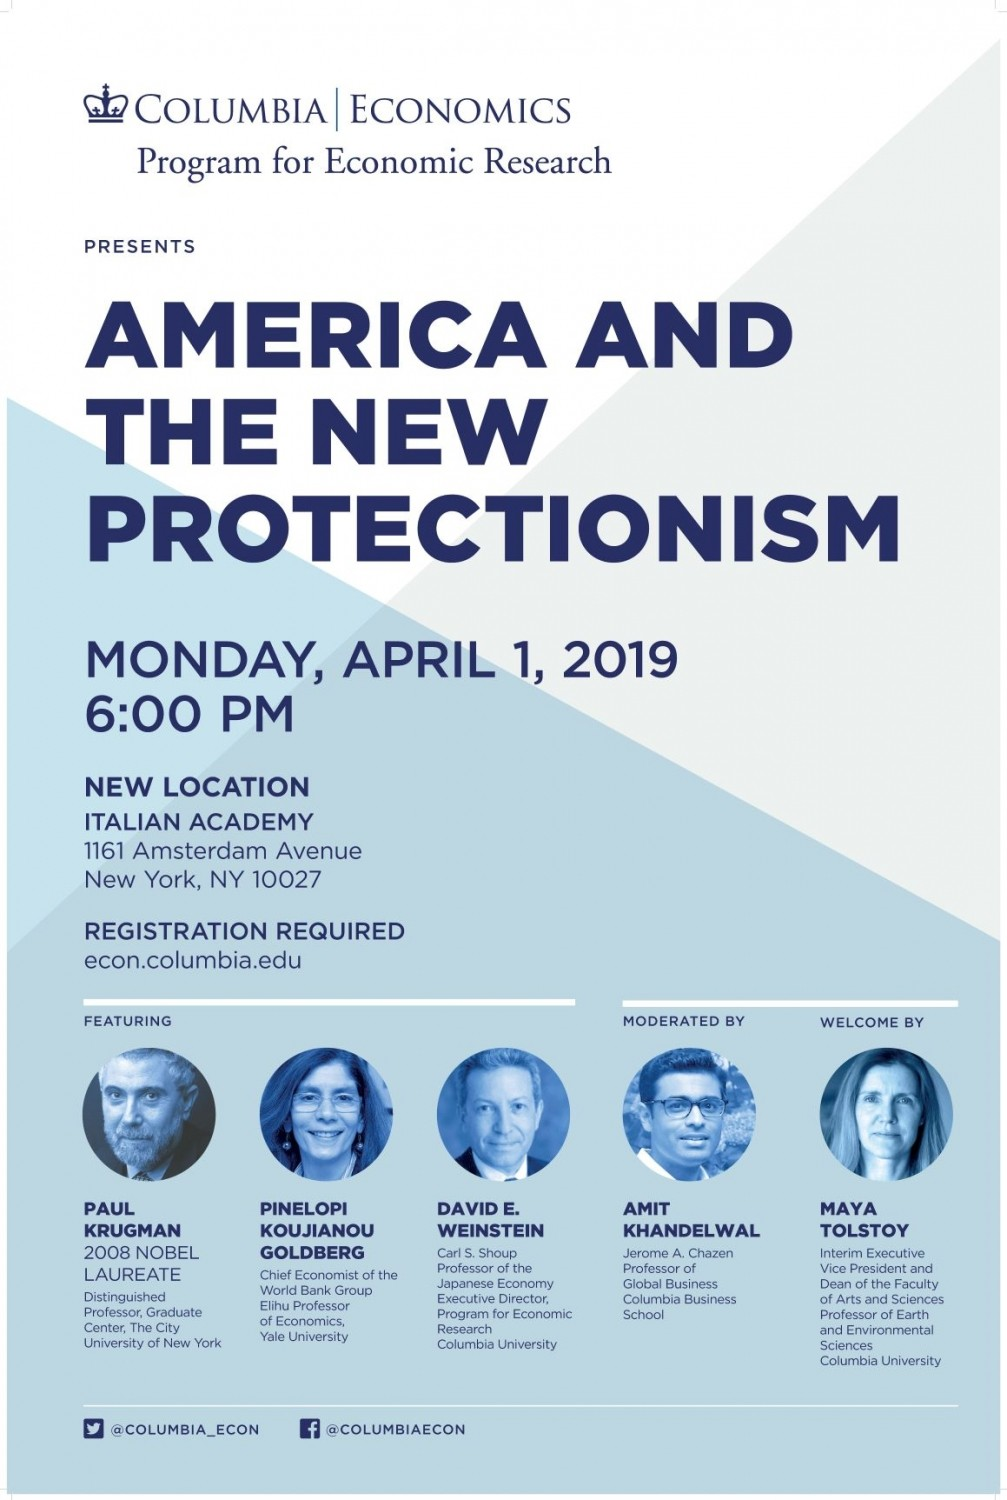 America and the New Protectionism